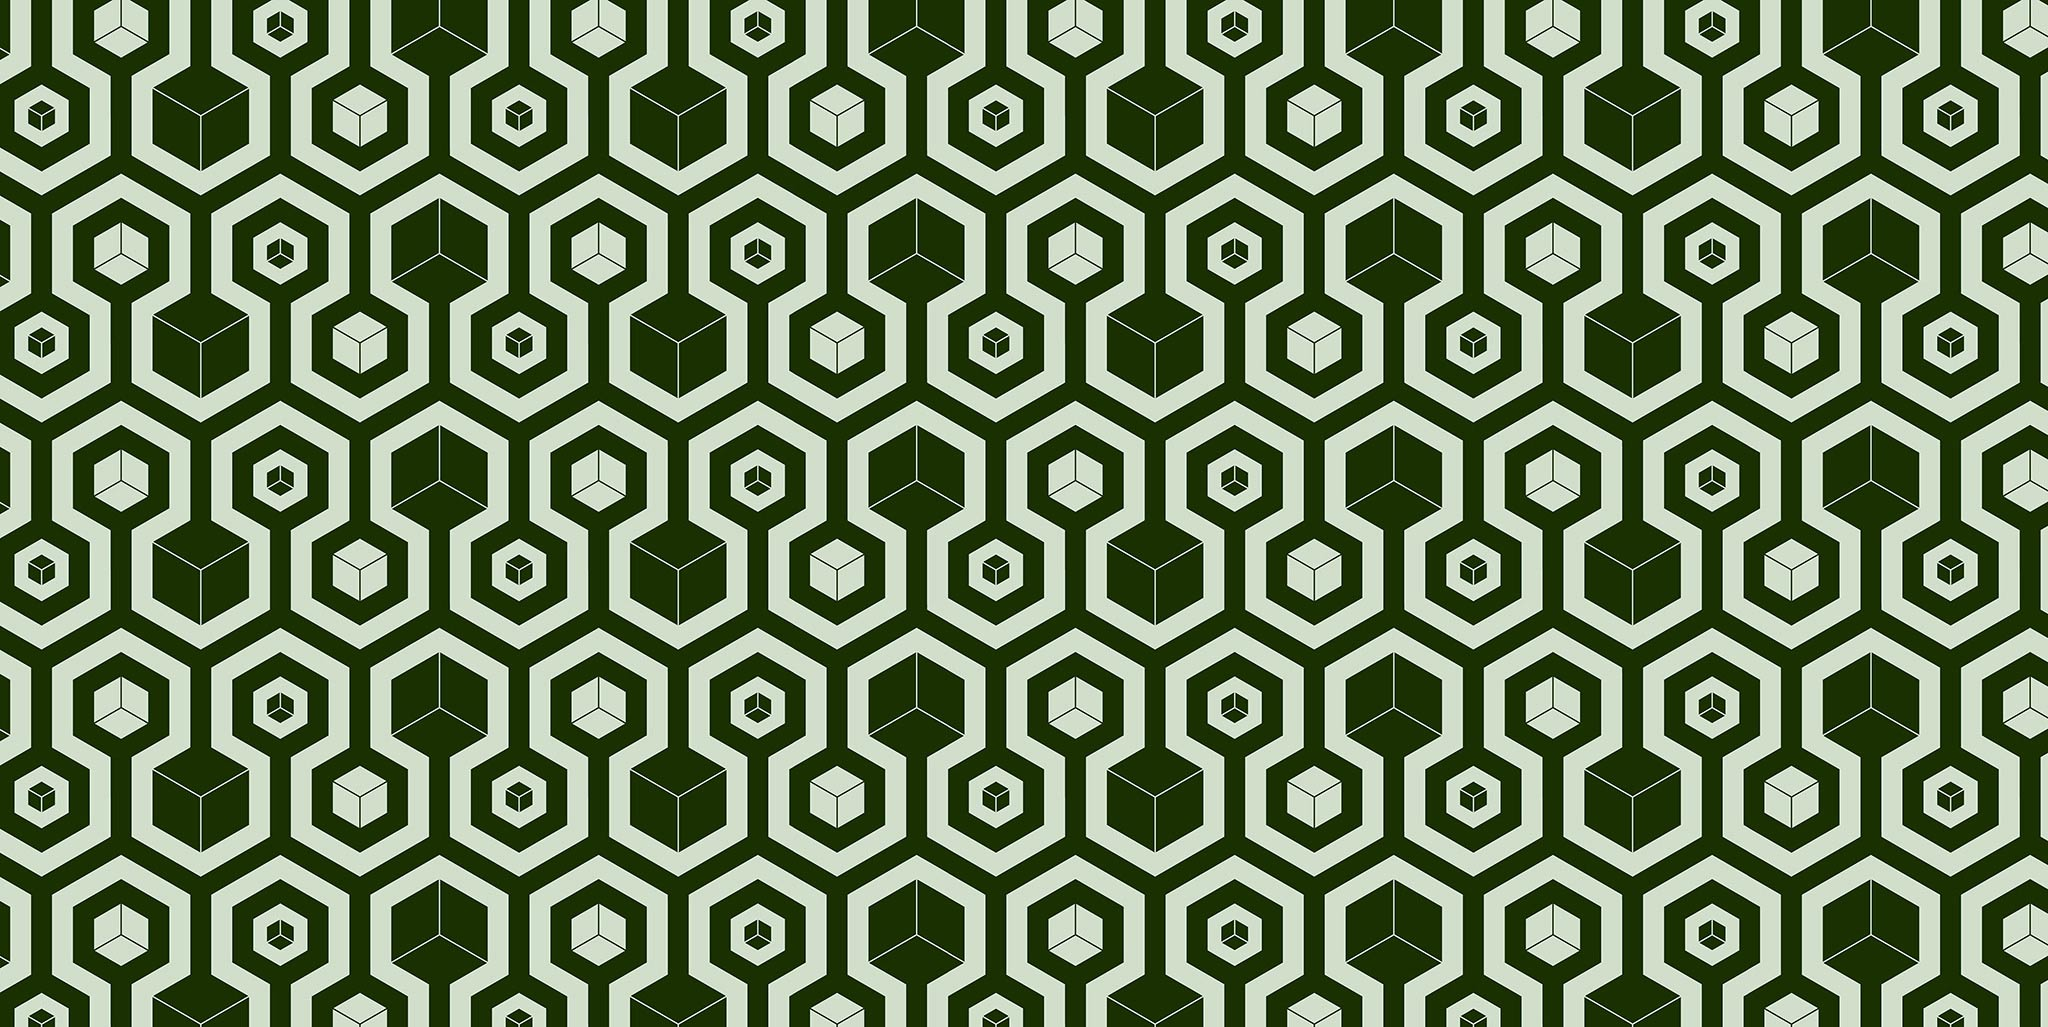 Wallpaper edition for The Square Roots, from The Fractal Architectures series